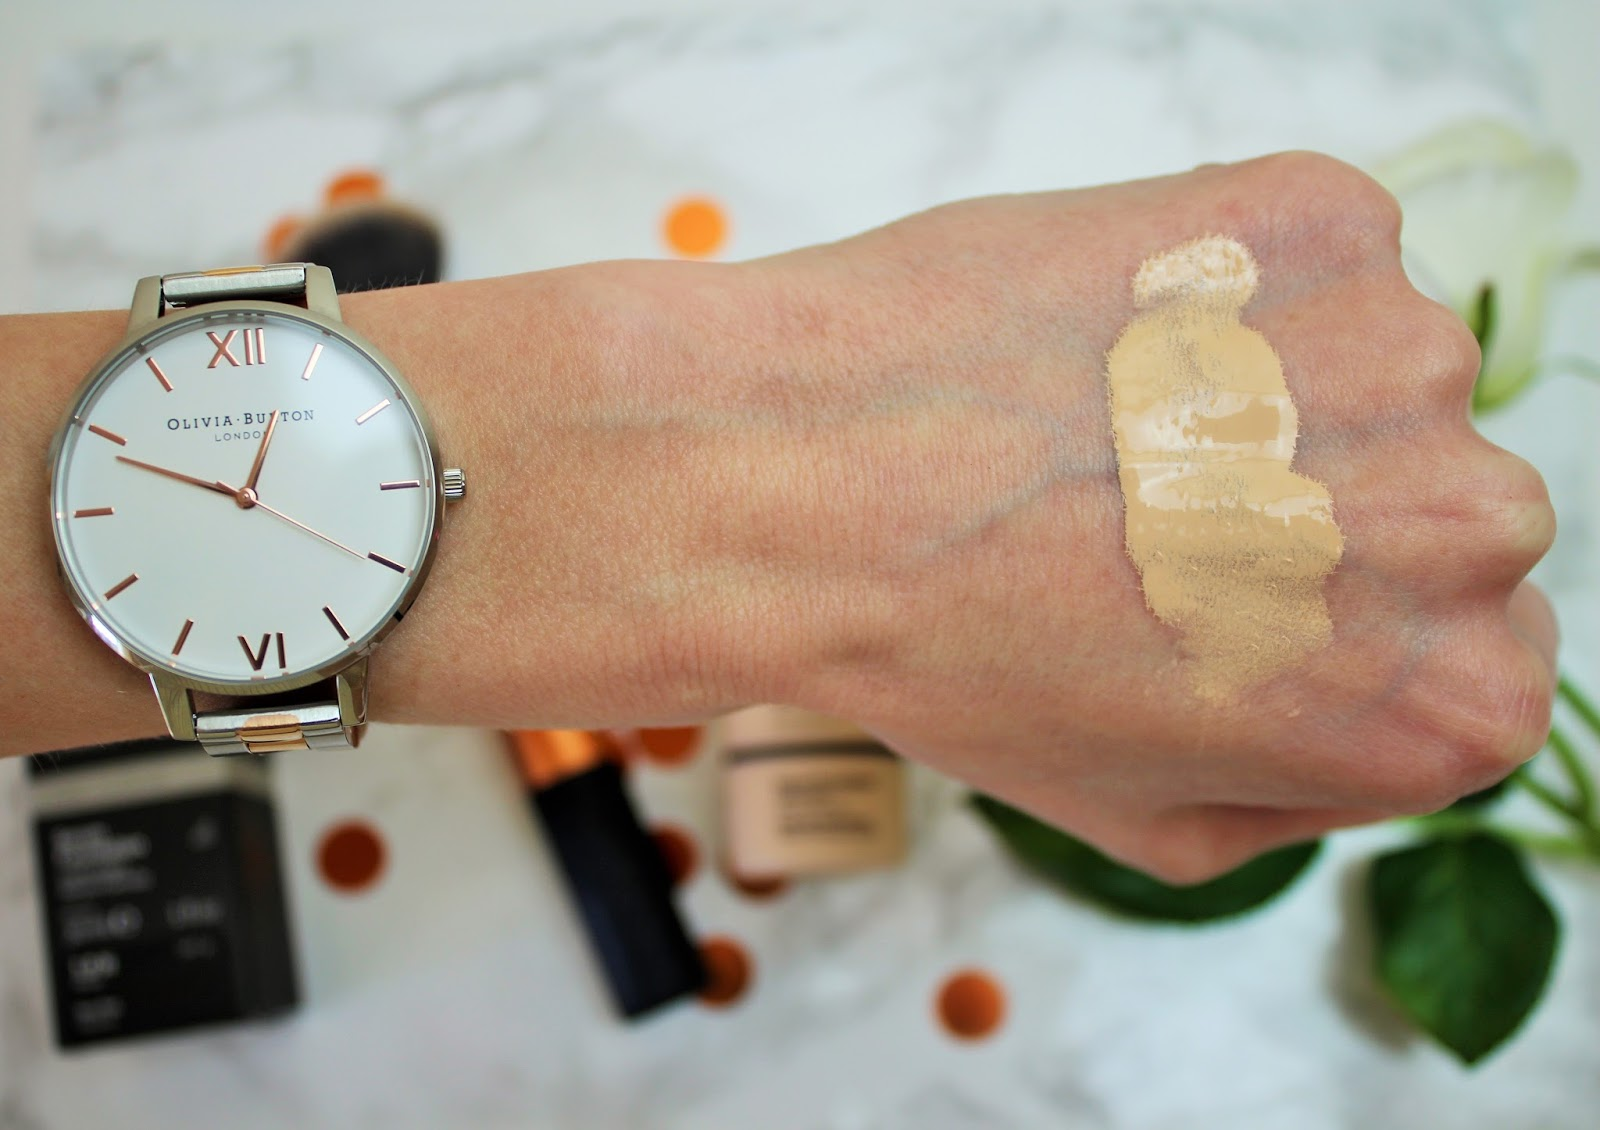 The Ordinary Serum Foundation Review - Does Your Skin Type Matter? - 4